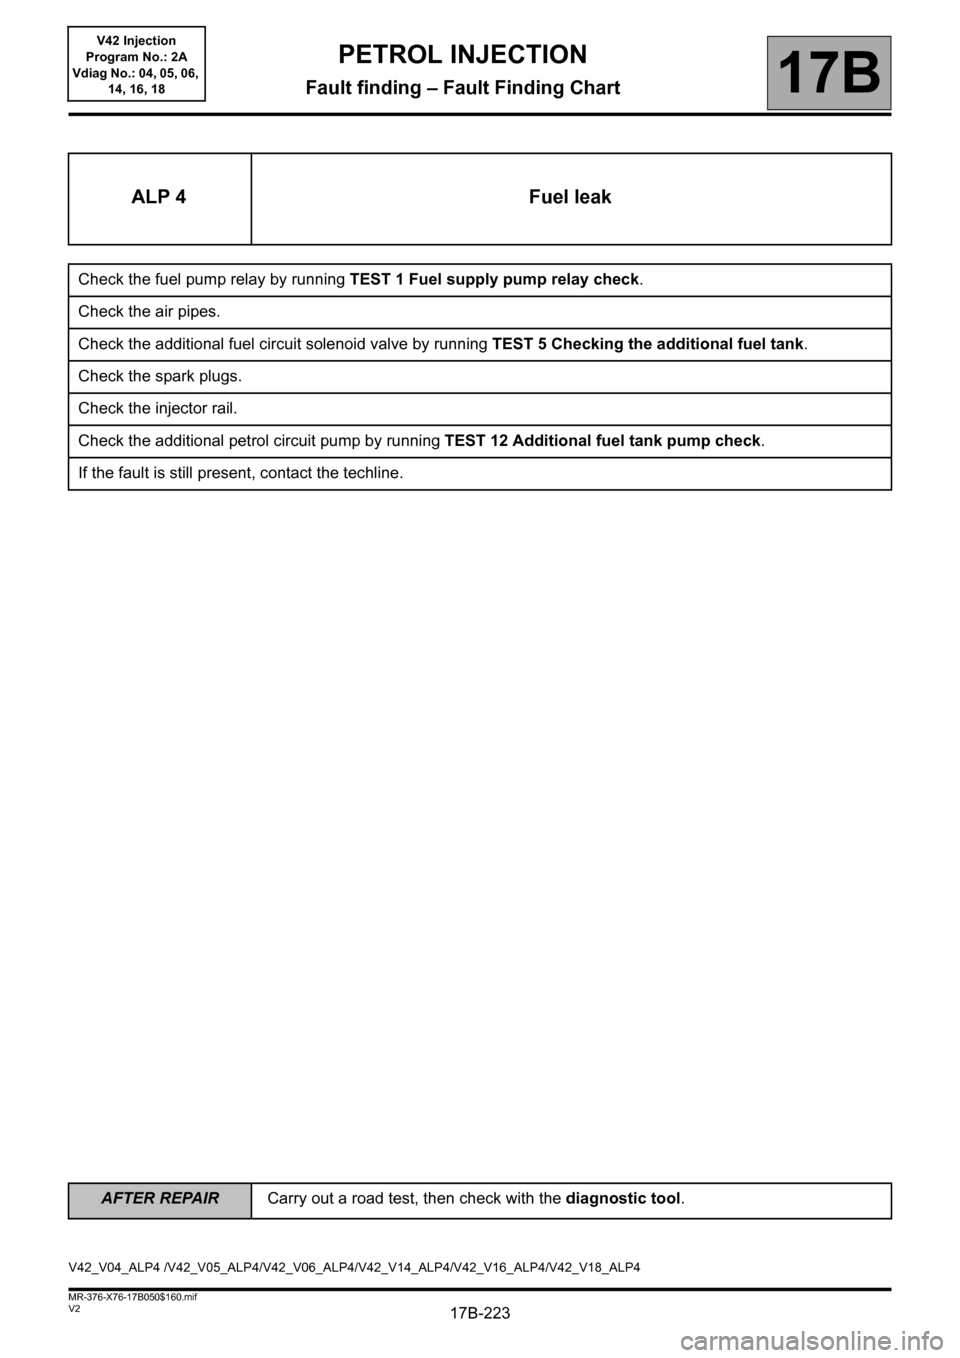 RENAULT KANGOO 2013 X61 / 2.G Petrol V42 Injection Workshop Manual, Page 223